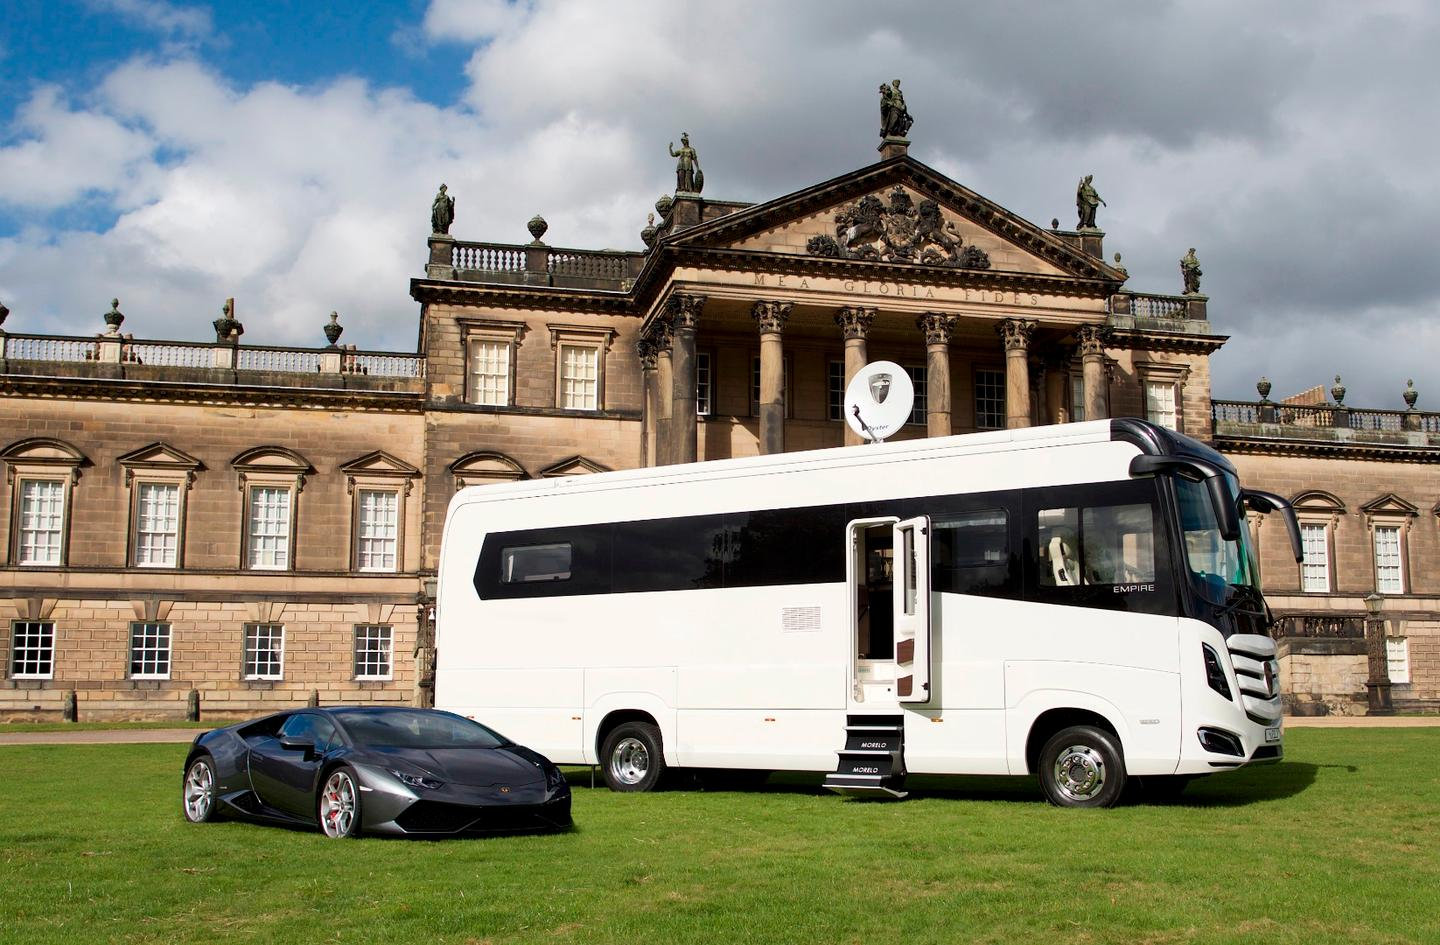 Morelo says the Empire Liner is like the Lamborghini of motor homes